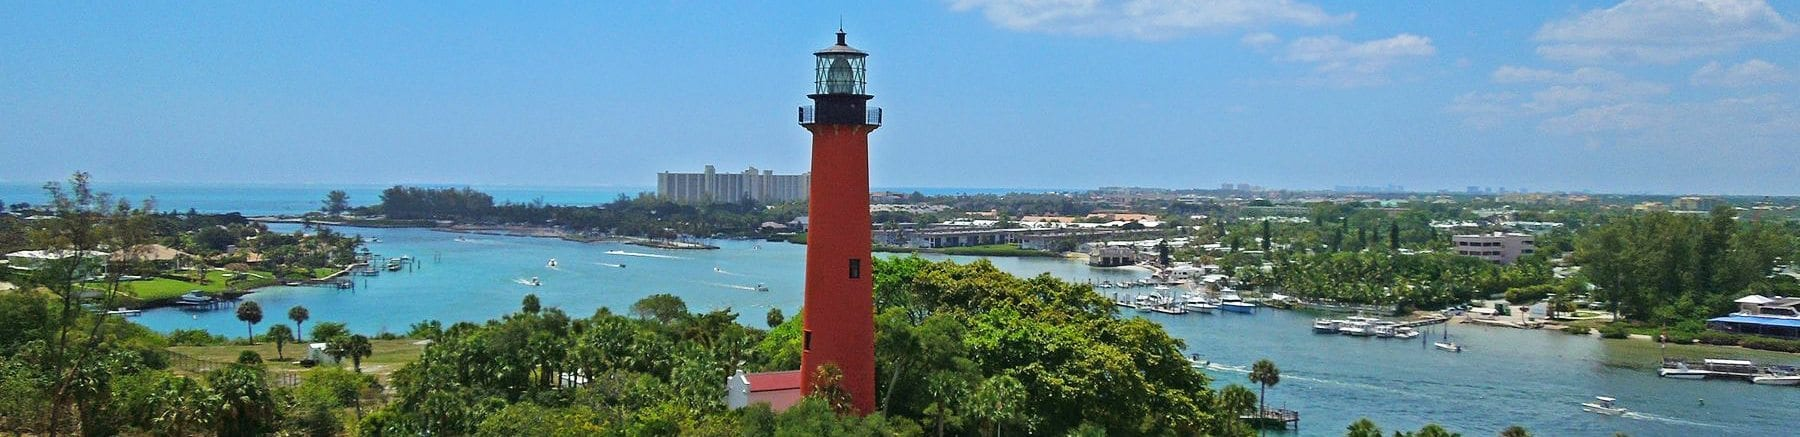 Jupiter FL Lighthouse